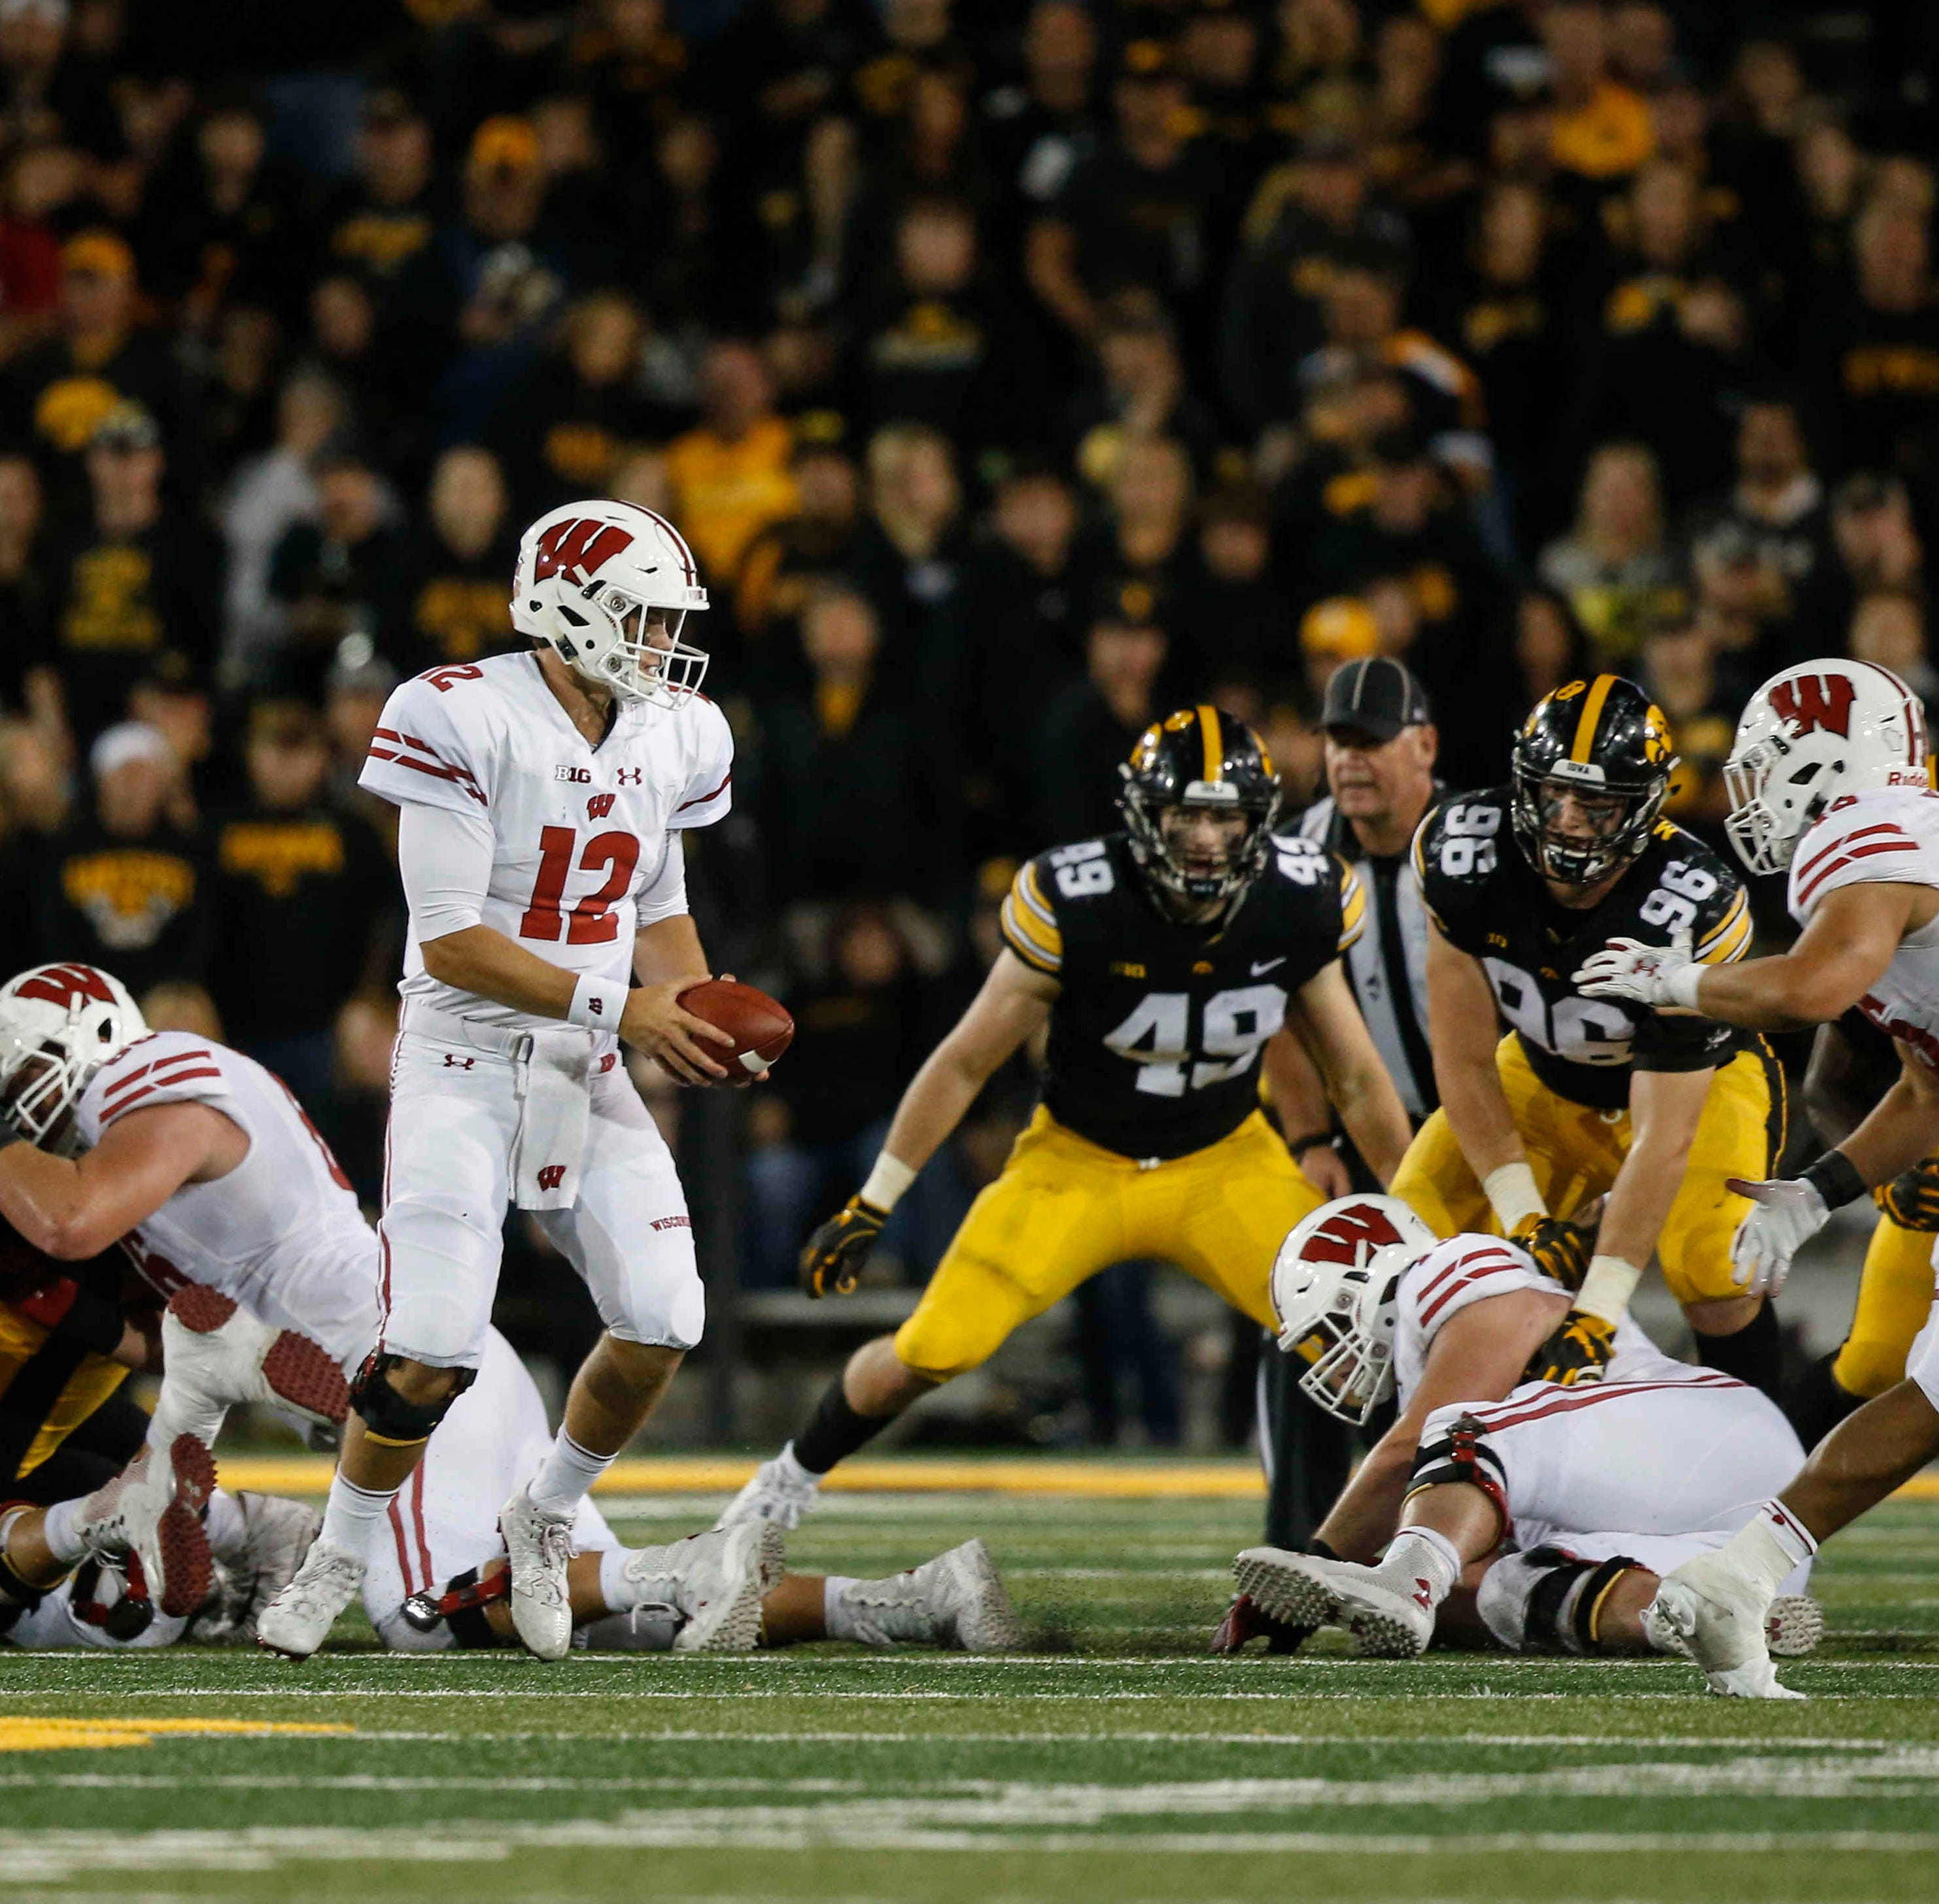 Iowa gives Wisconsin quarterback one opportunity too many, and pays the price